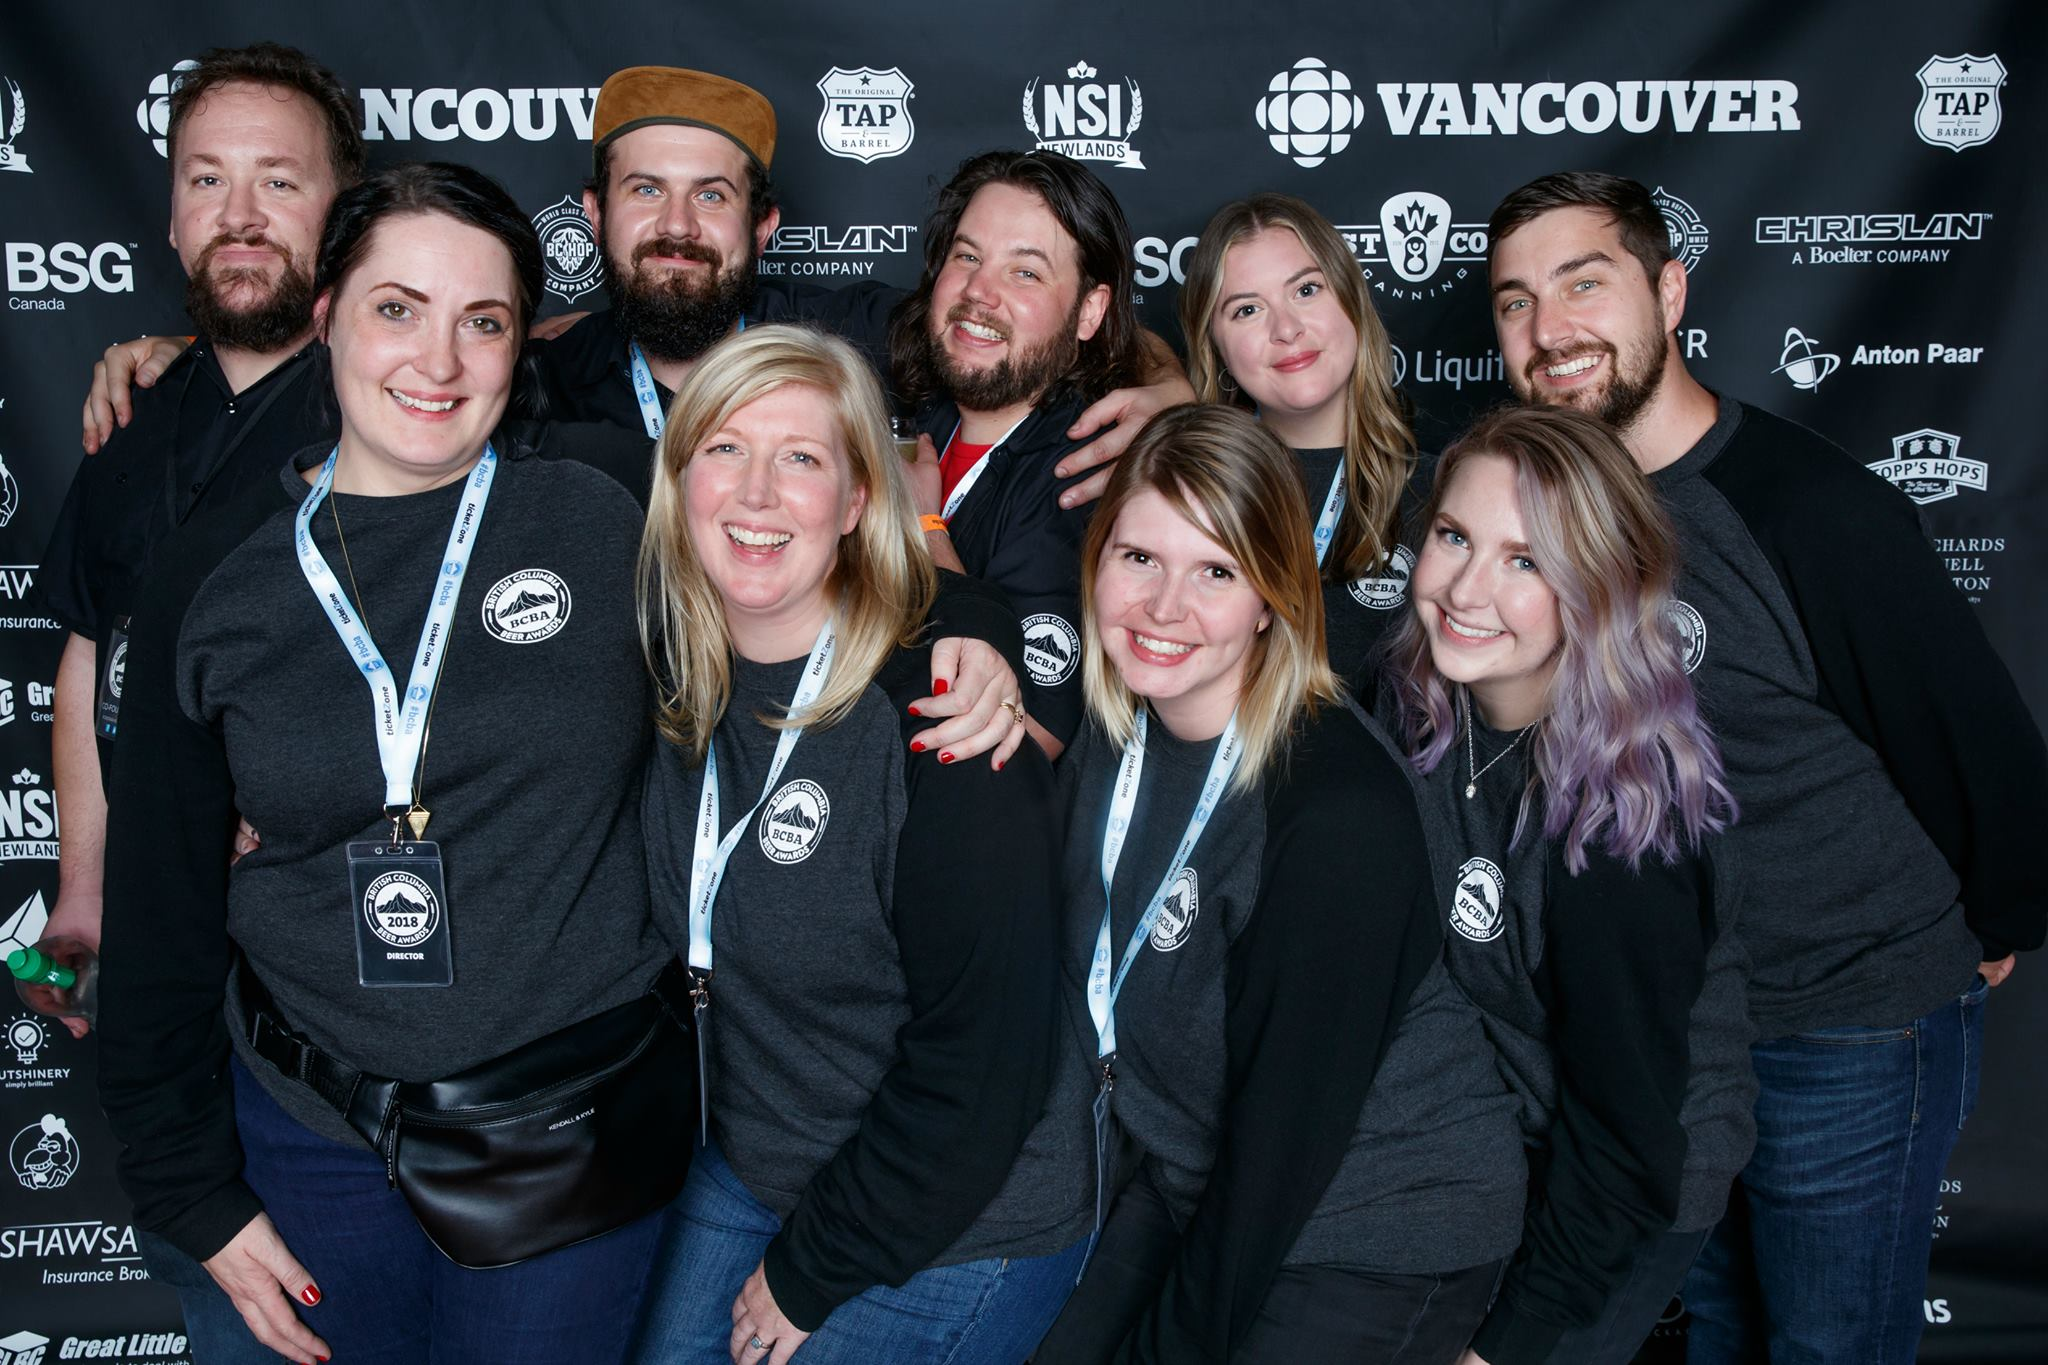 BC Beer Awards Team 2018. Photo credit: Charles Zuckermann Photography